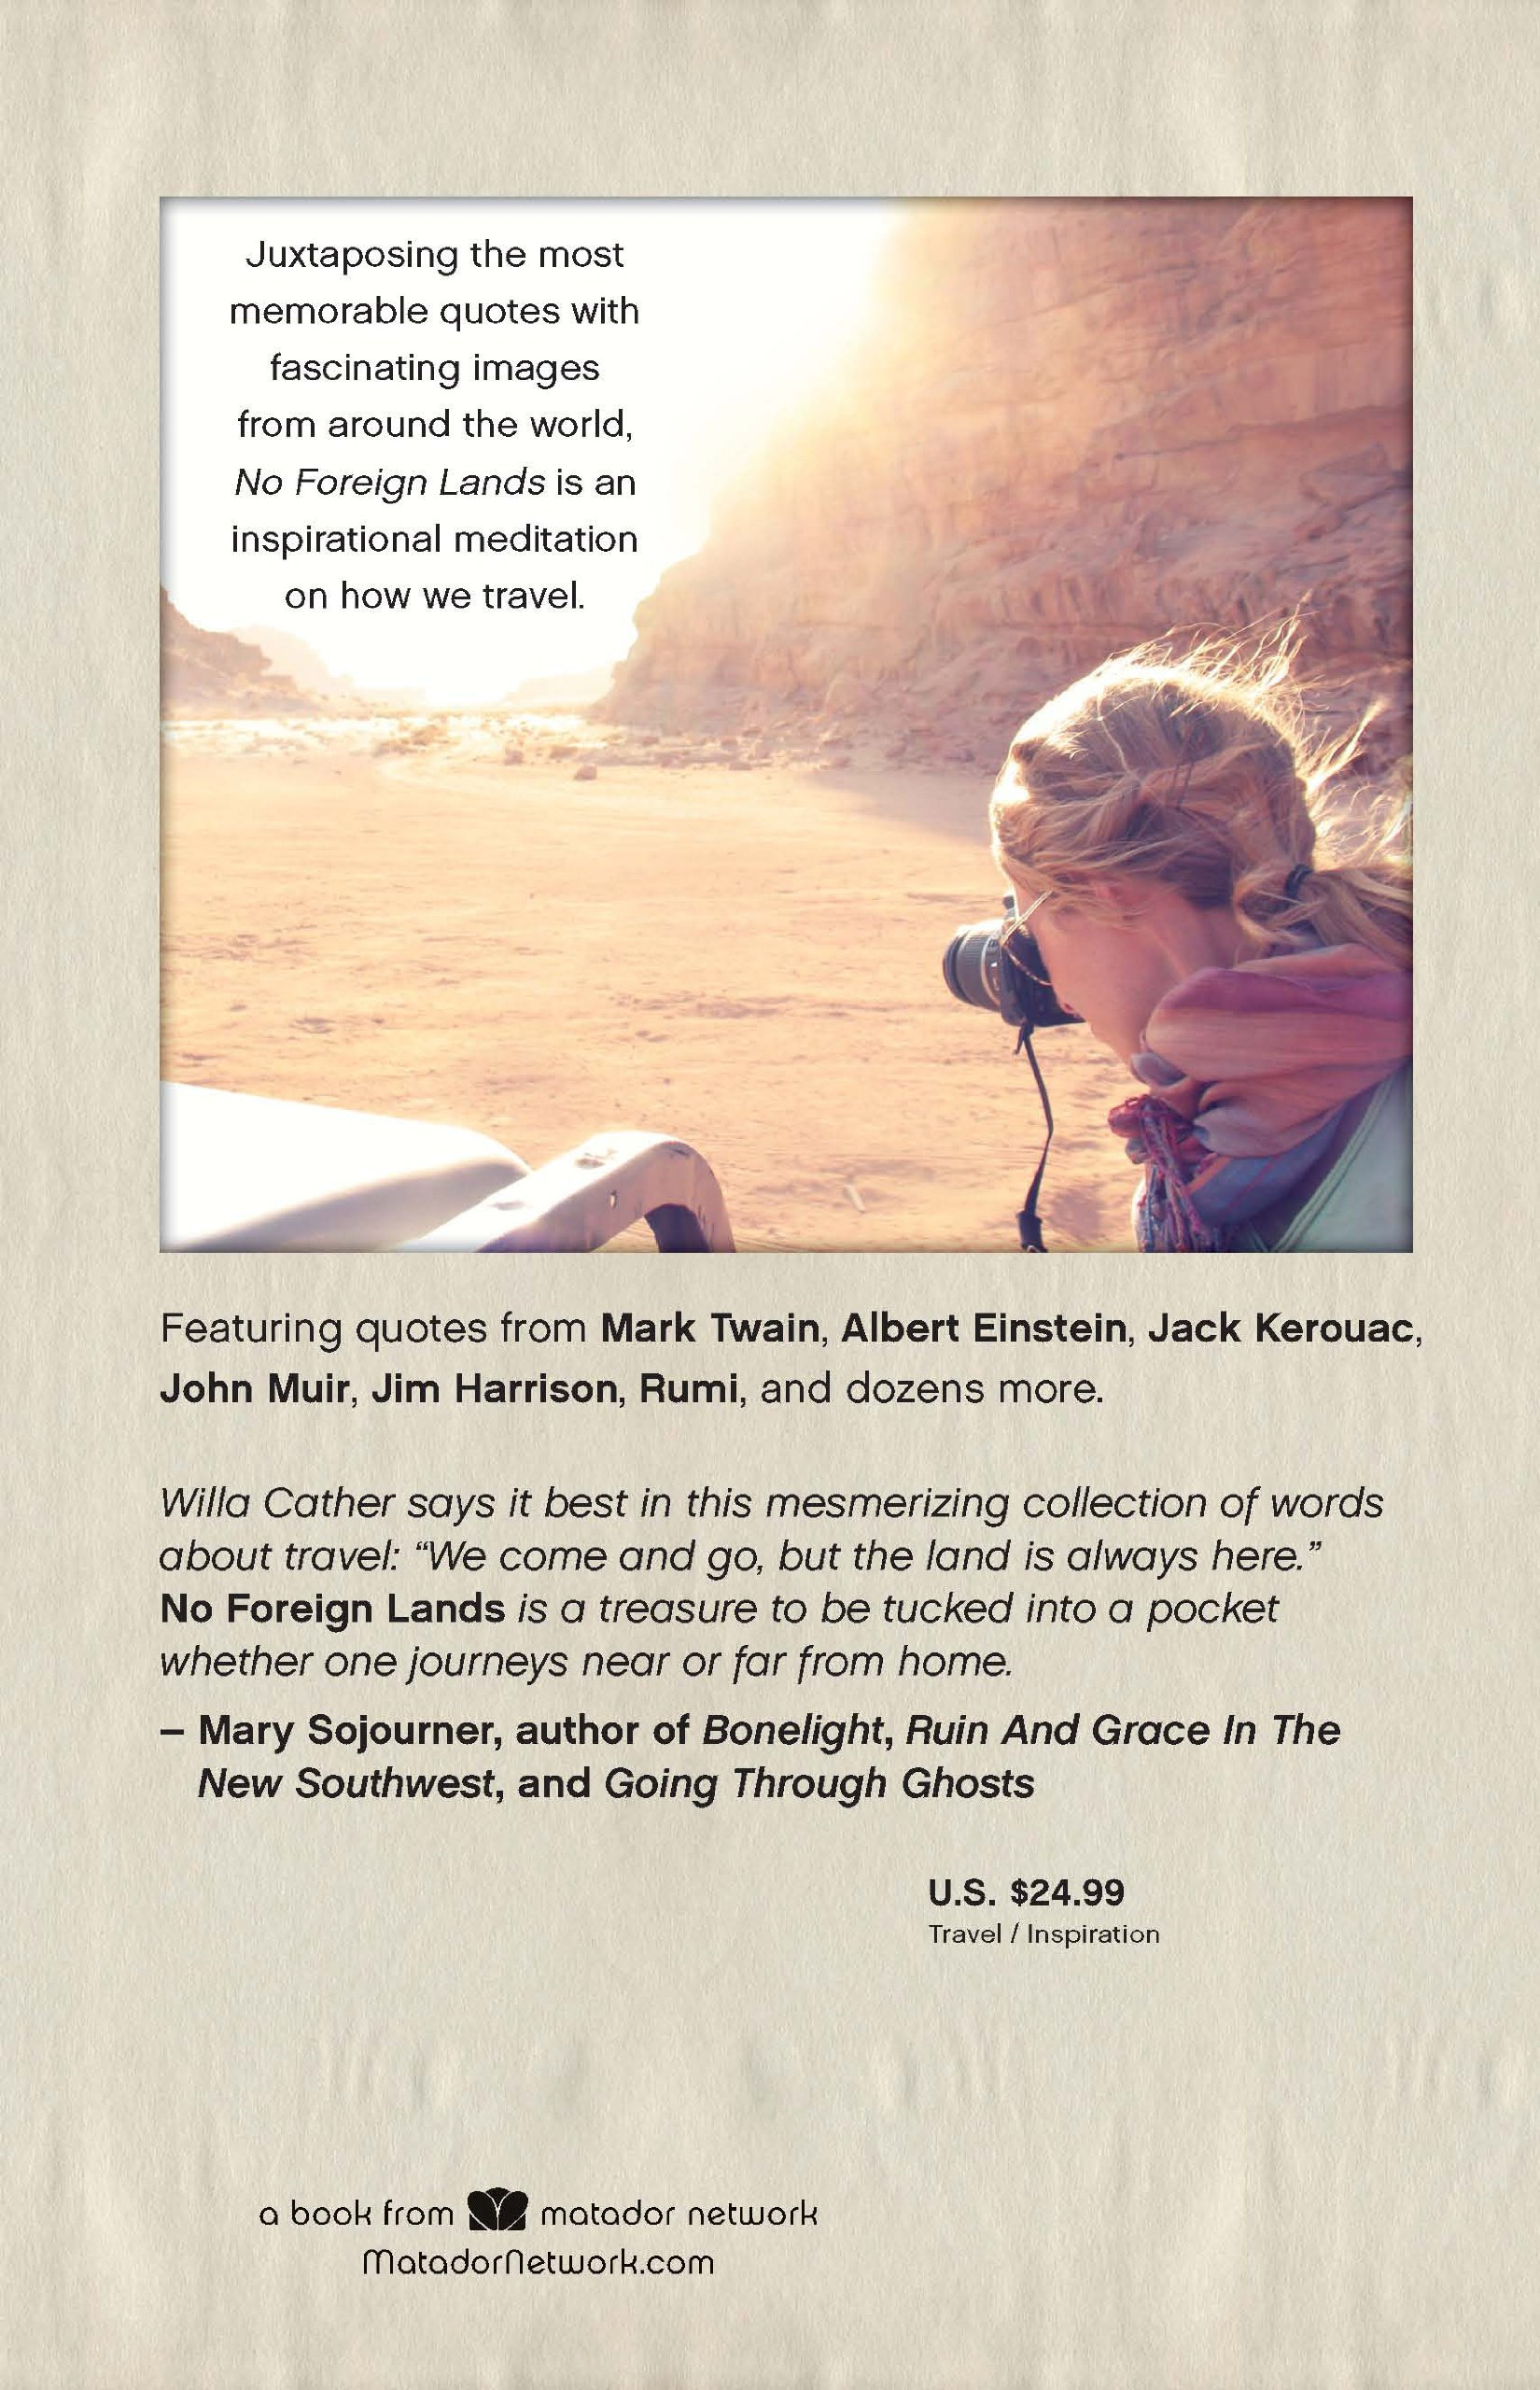 No Foreign Lands 100 Of The Most Inspirational Travel Quotes Of All